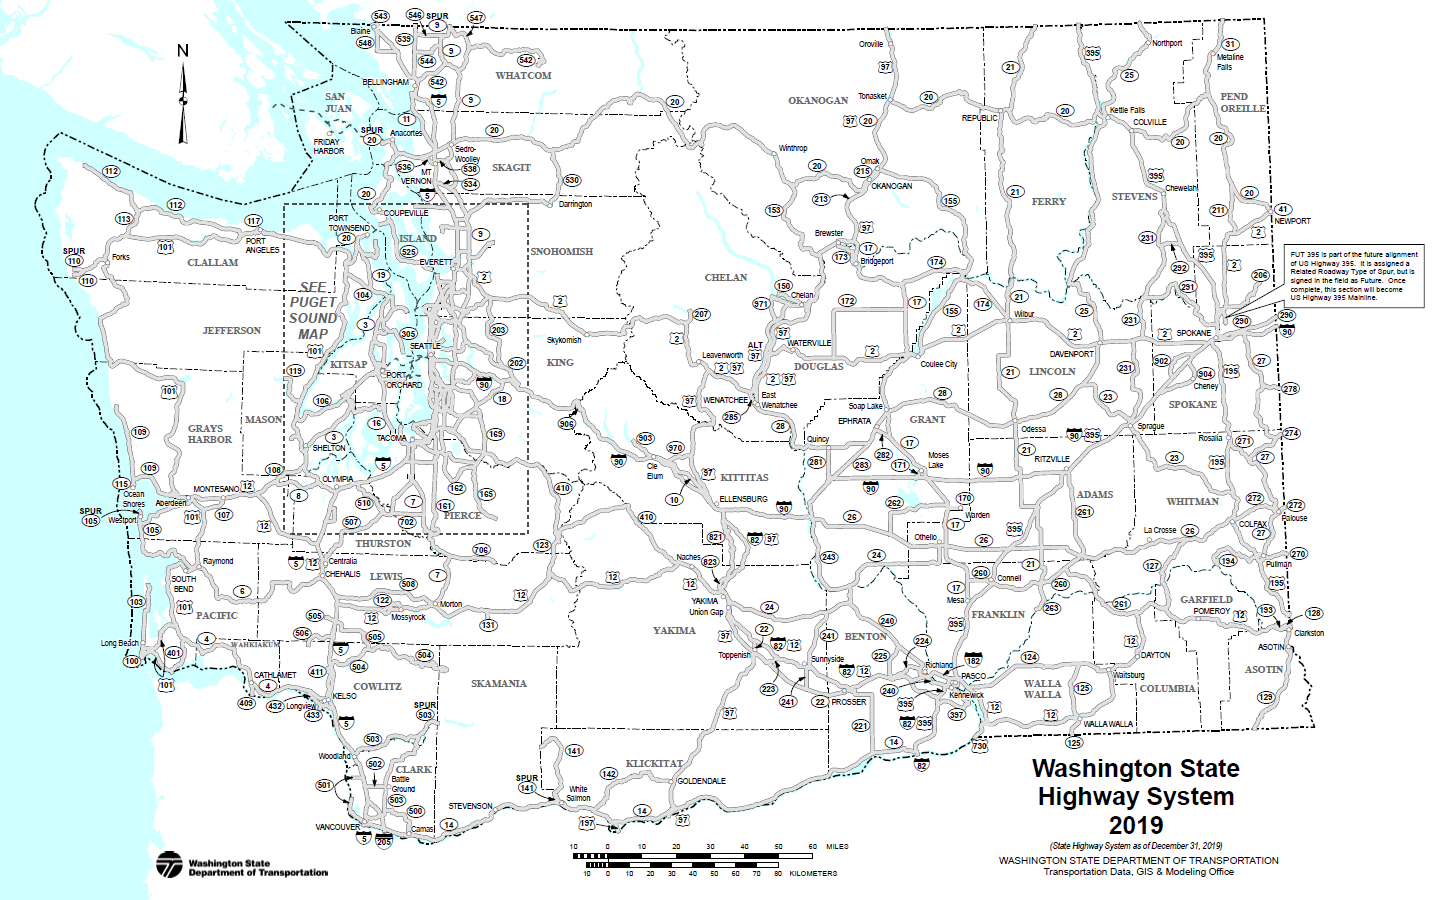 Map of Washington State Highway System as of December 31, 2019